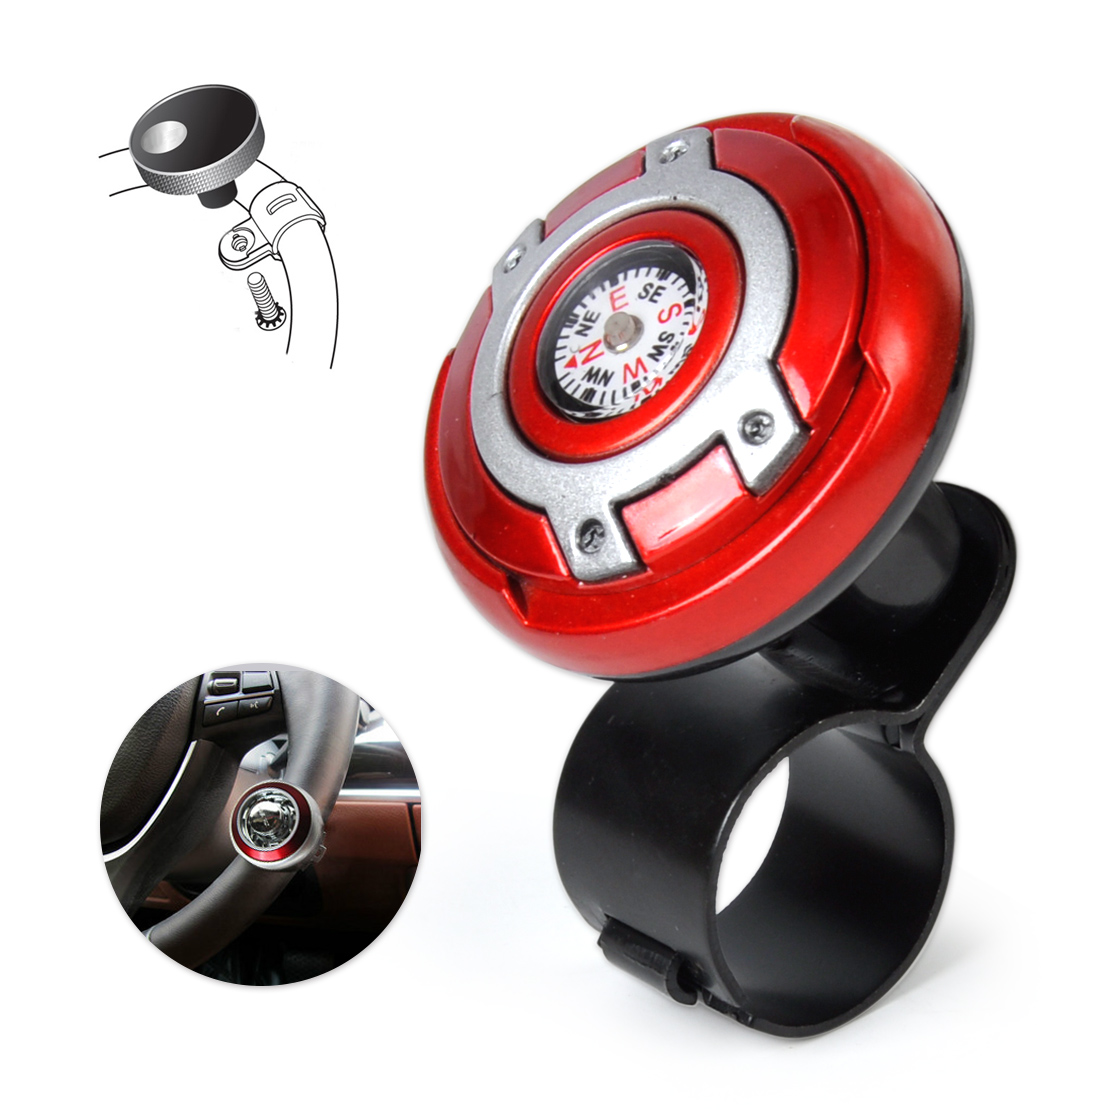 DWCX 2in1 Car Wheel Steering Knob Power Ball Control Power Handle Grip with Navigation Compass for focus Golf Corolla Civic Rio